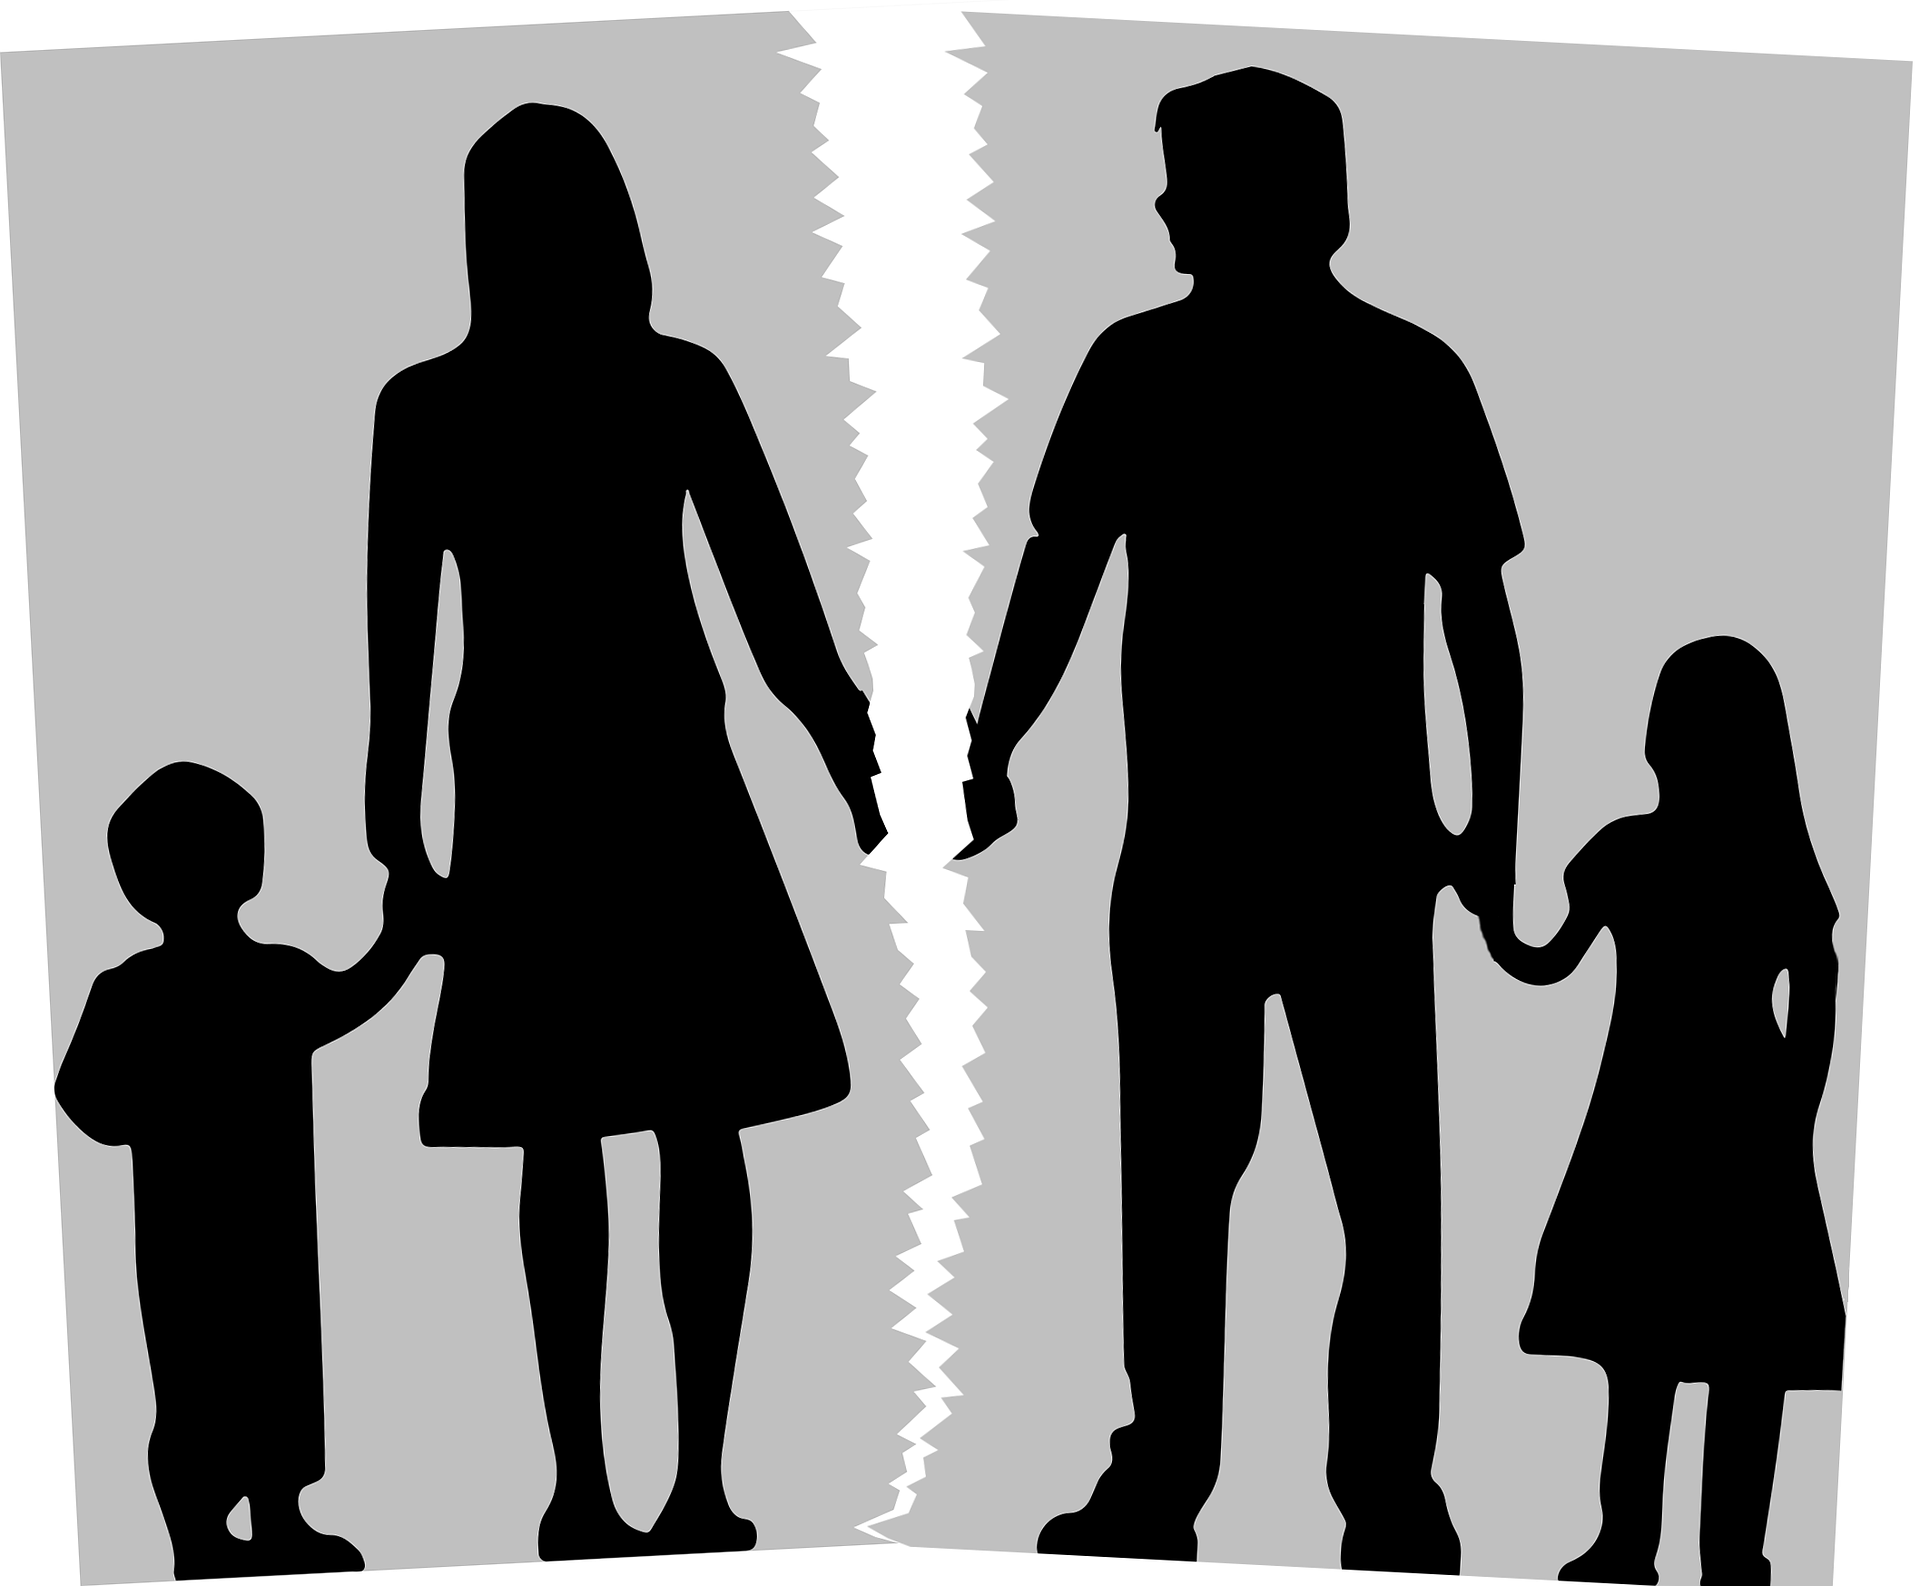 divorce, sharing custody, parenting plans, courtesy Arizona Divorce Lawyer and Daniel Siegel